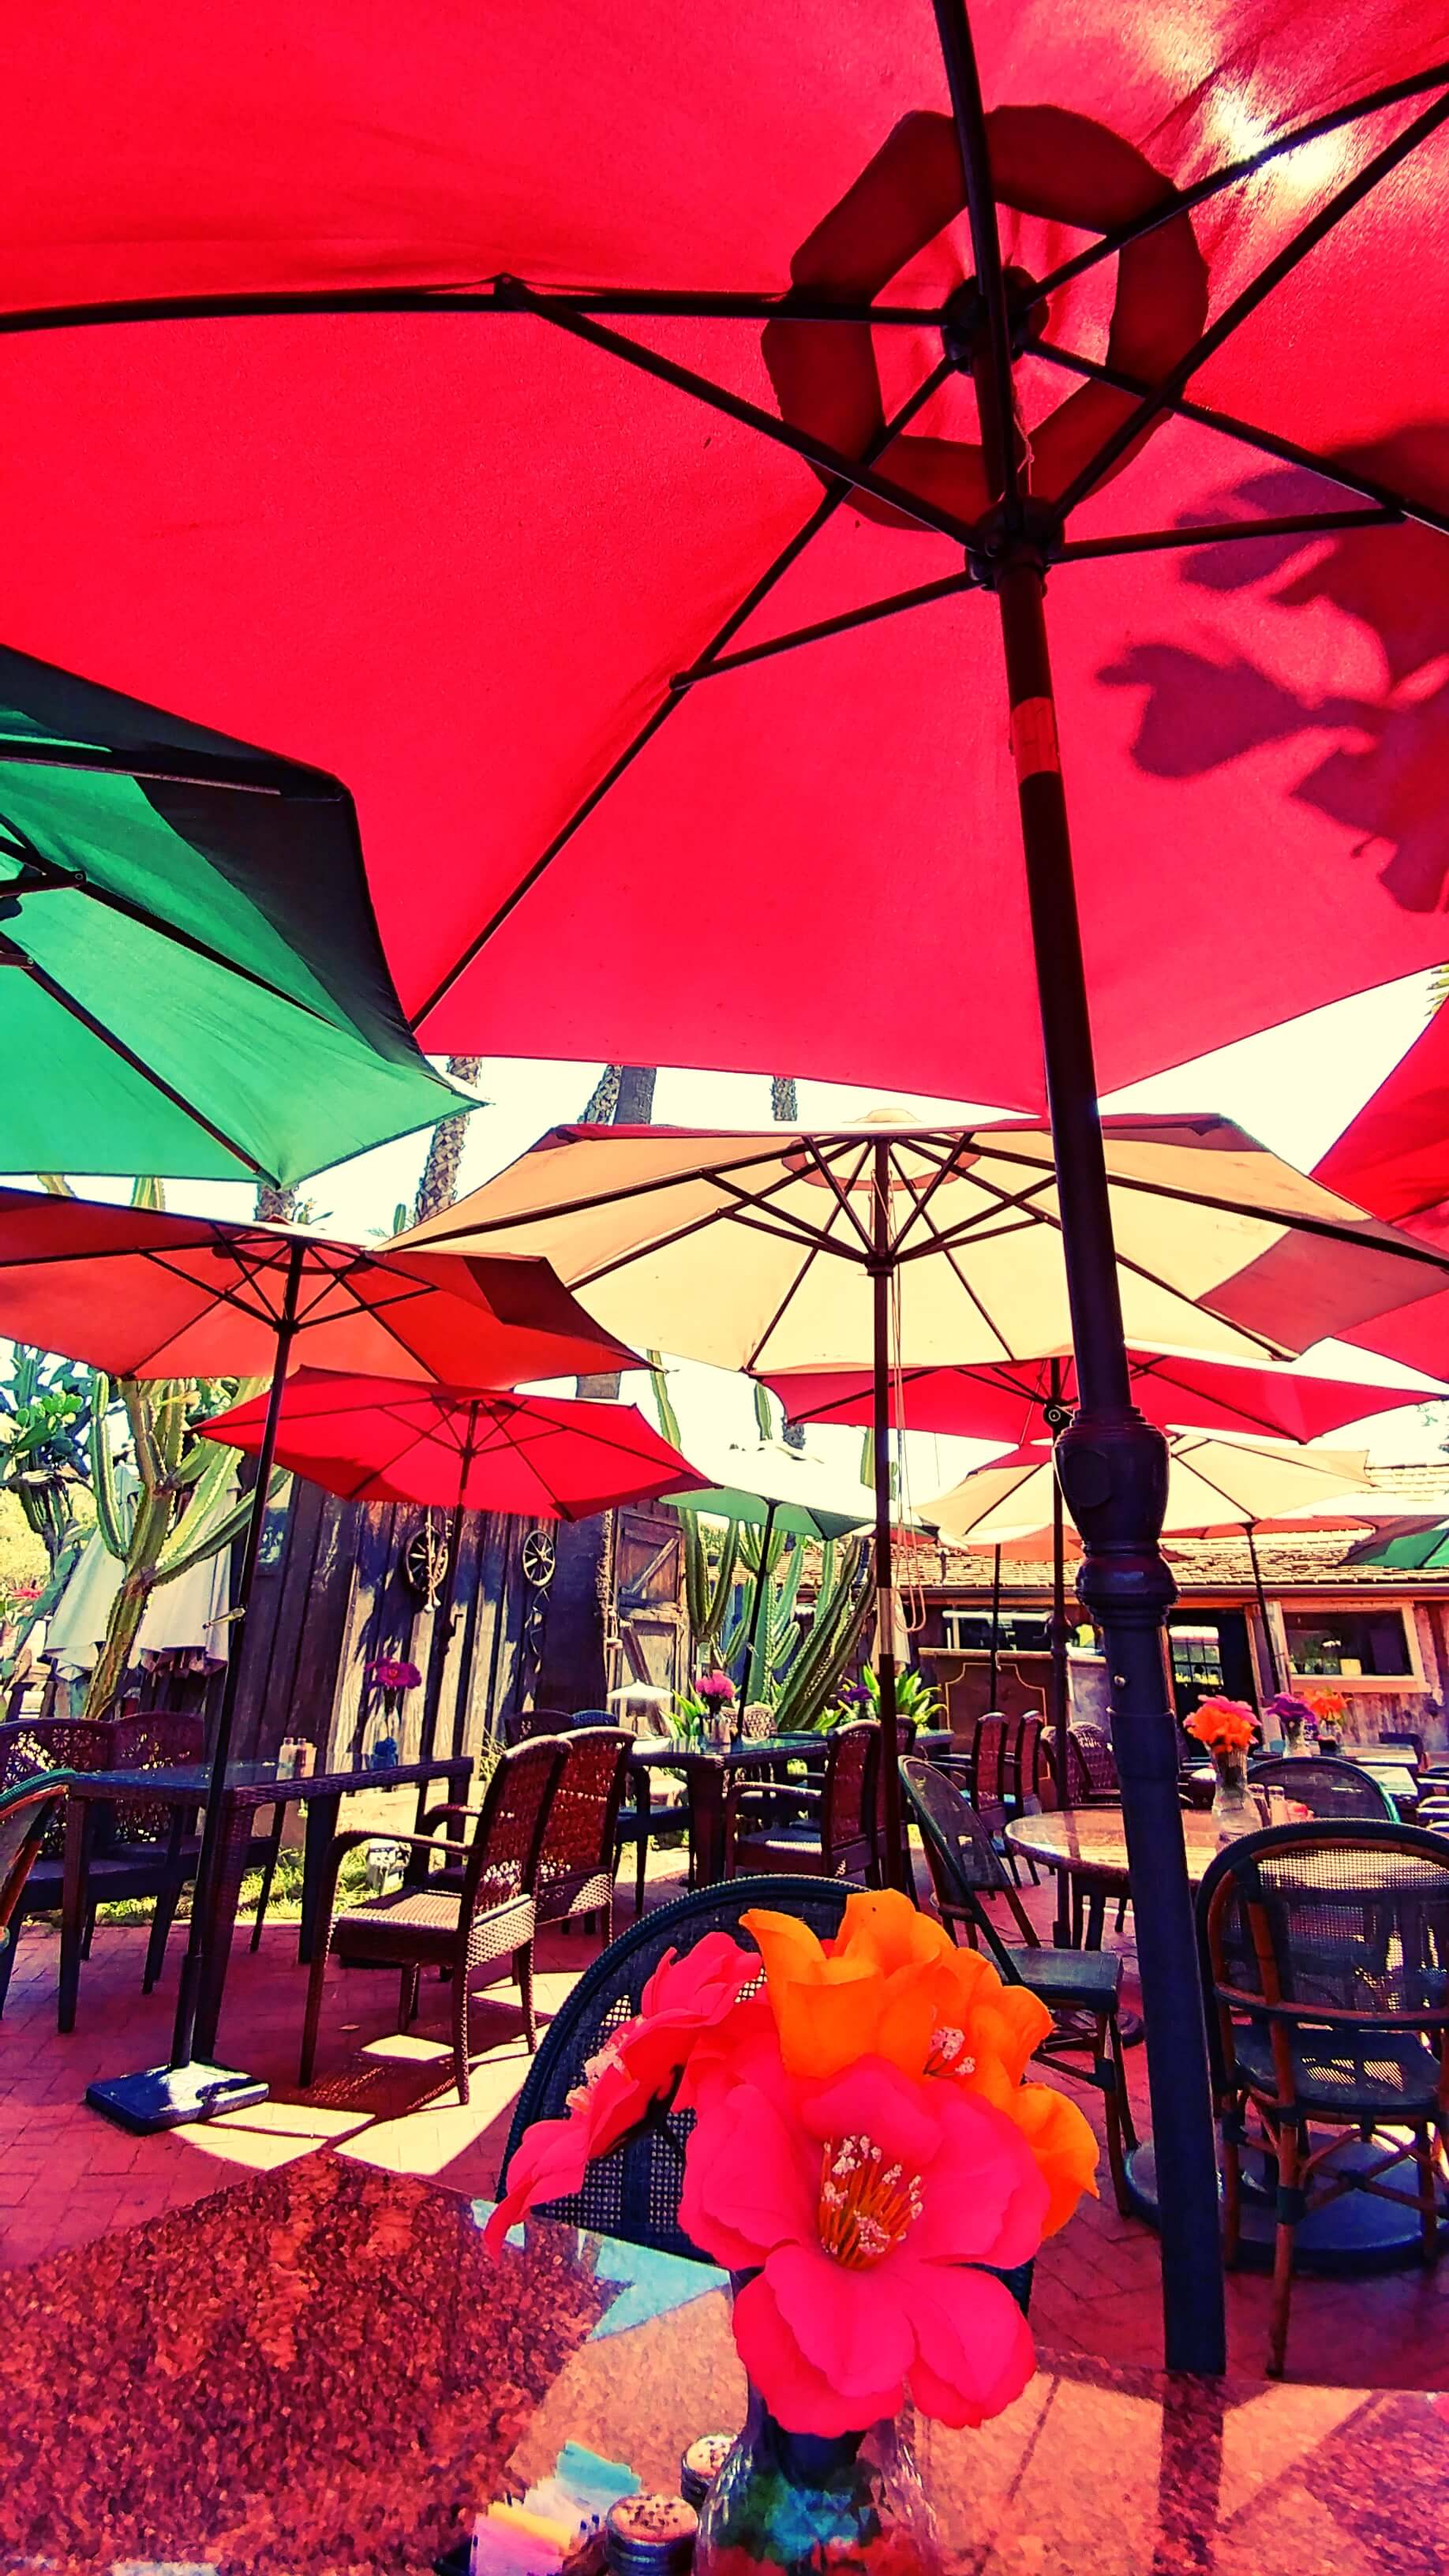 Outdoor seating vibes, Hummingbird House Cafe, Los Rios Street, San Juan Capistrano